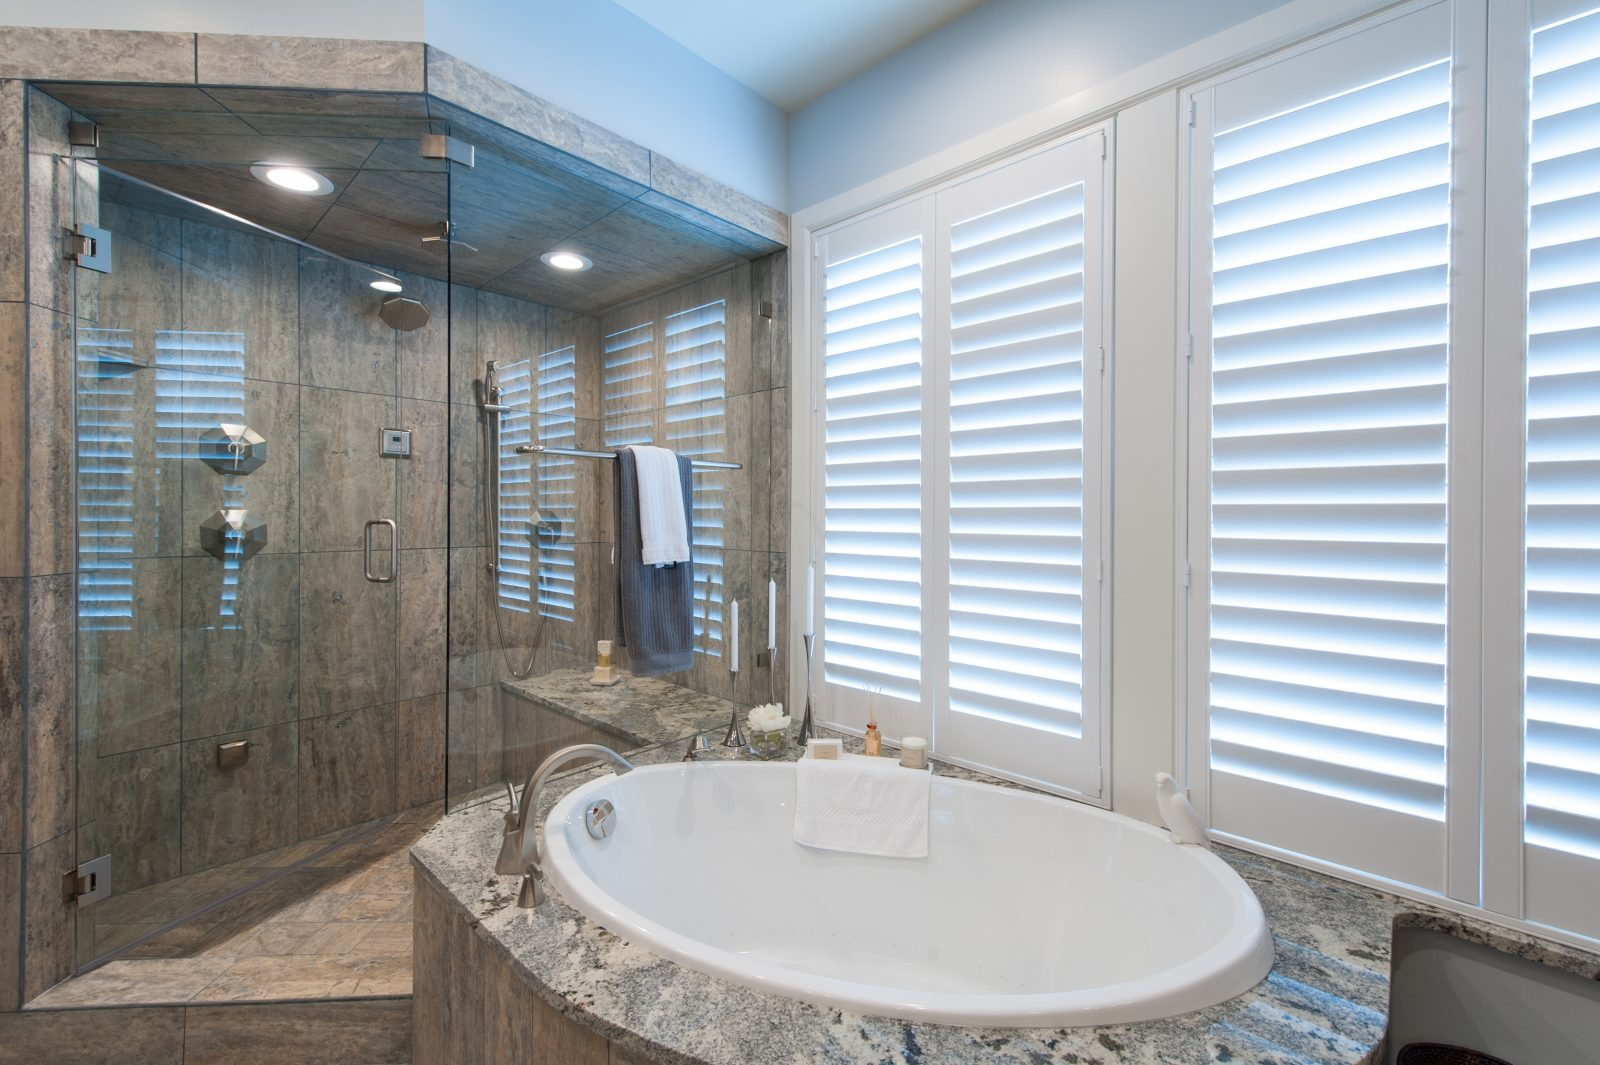 Briarcreek Contemporary, Interior Main Master Bath Remodel by Renovation Design